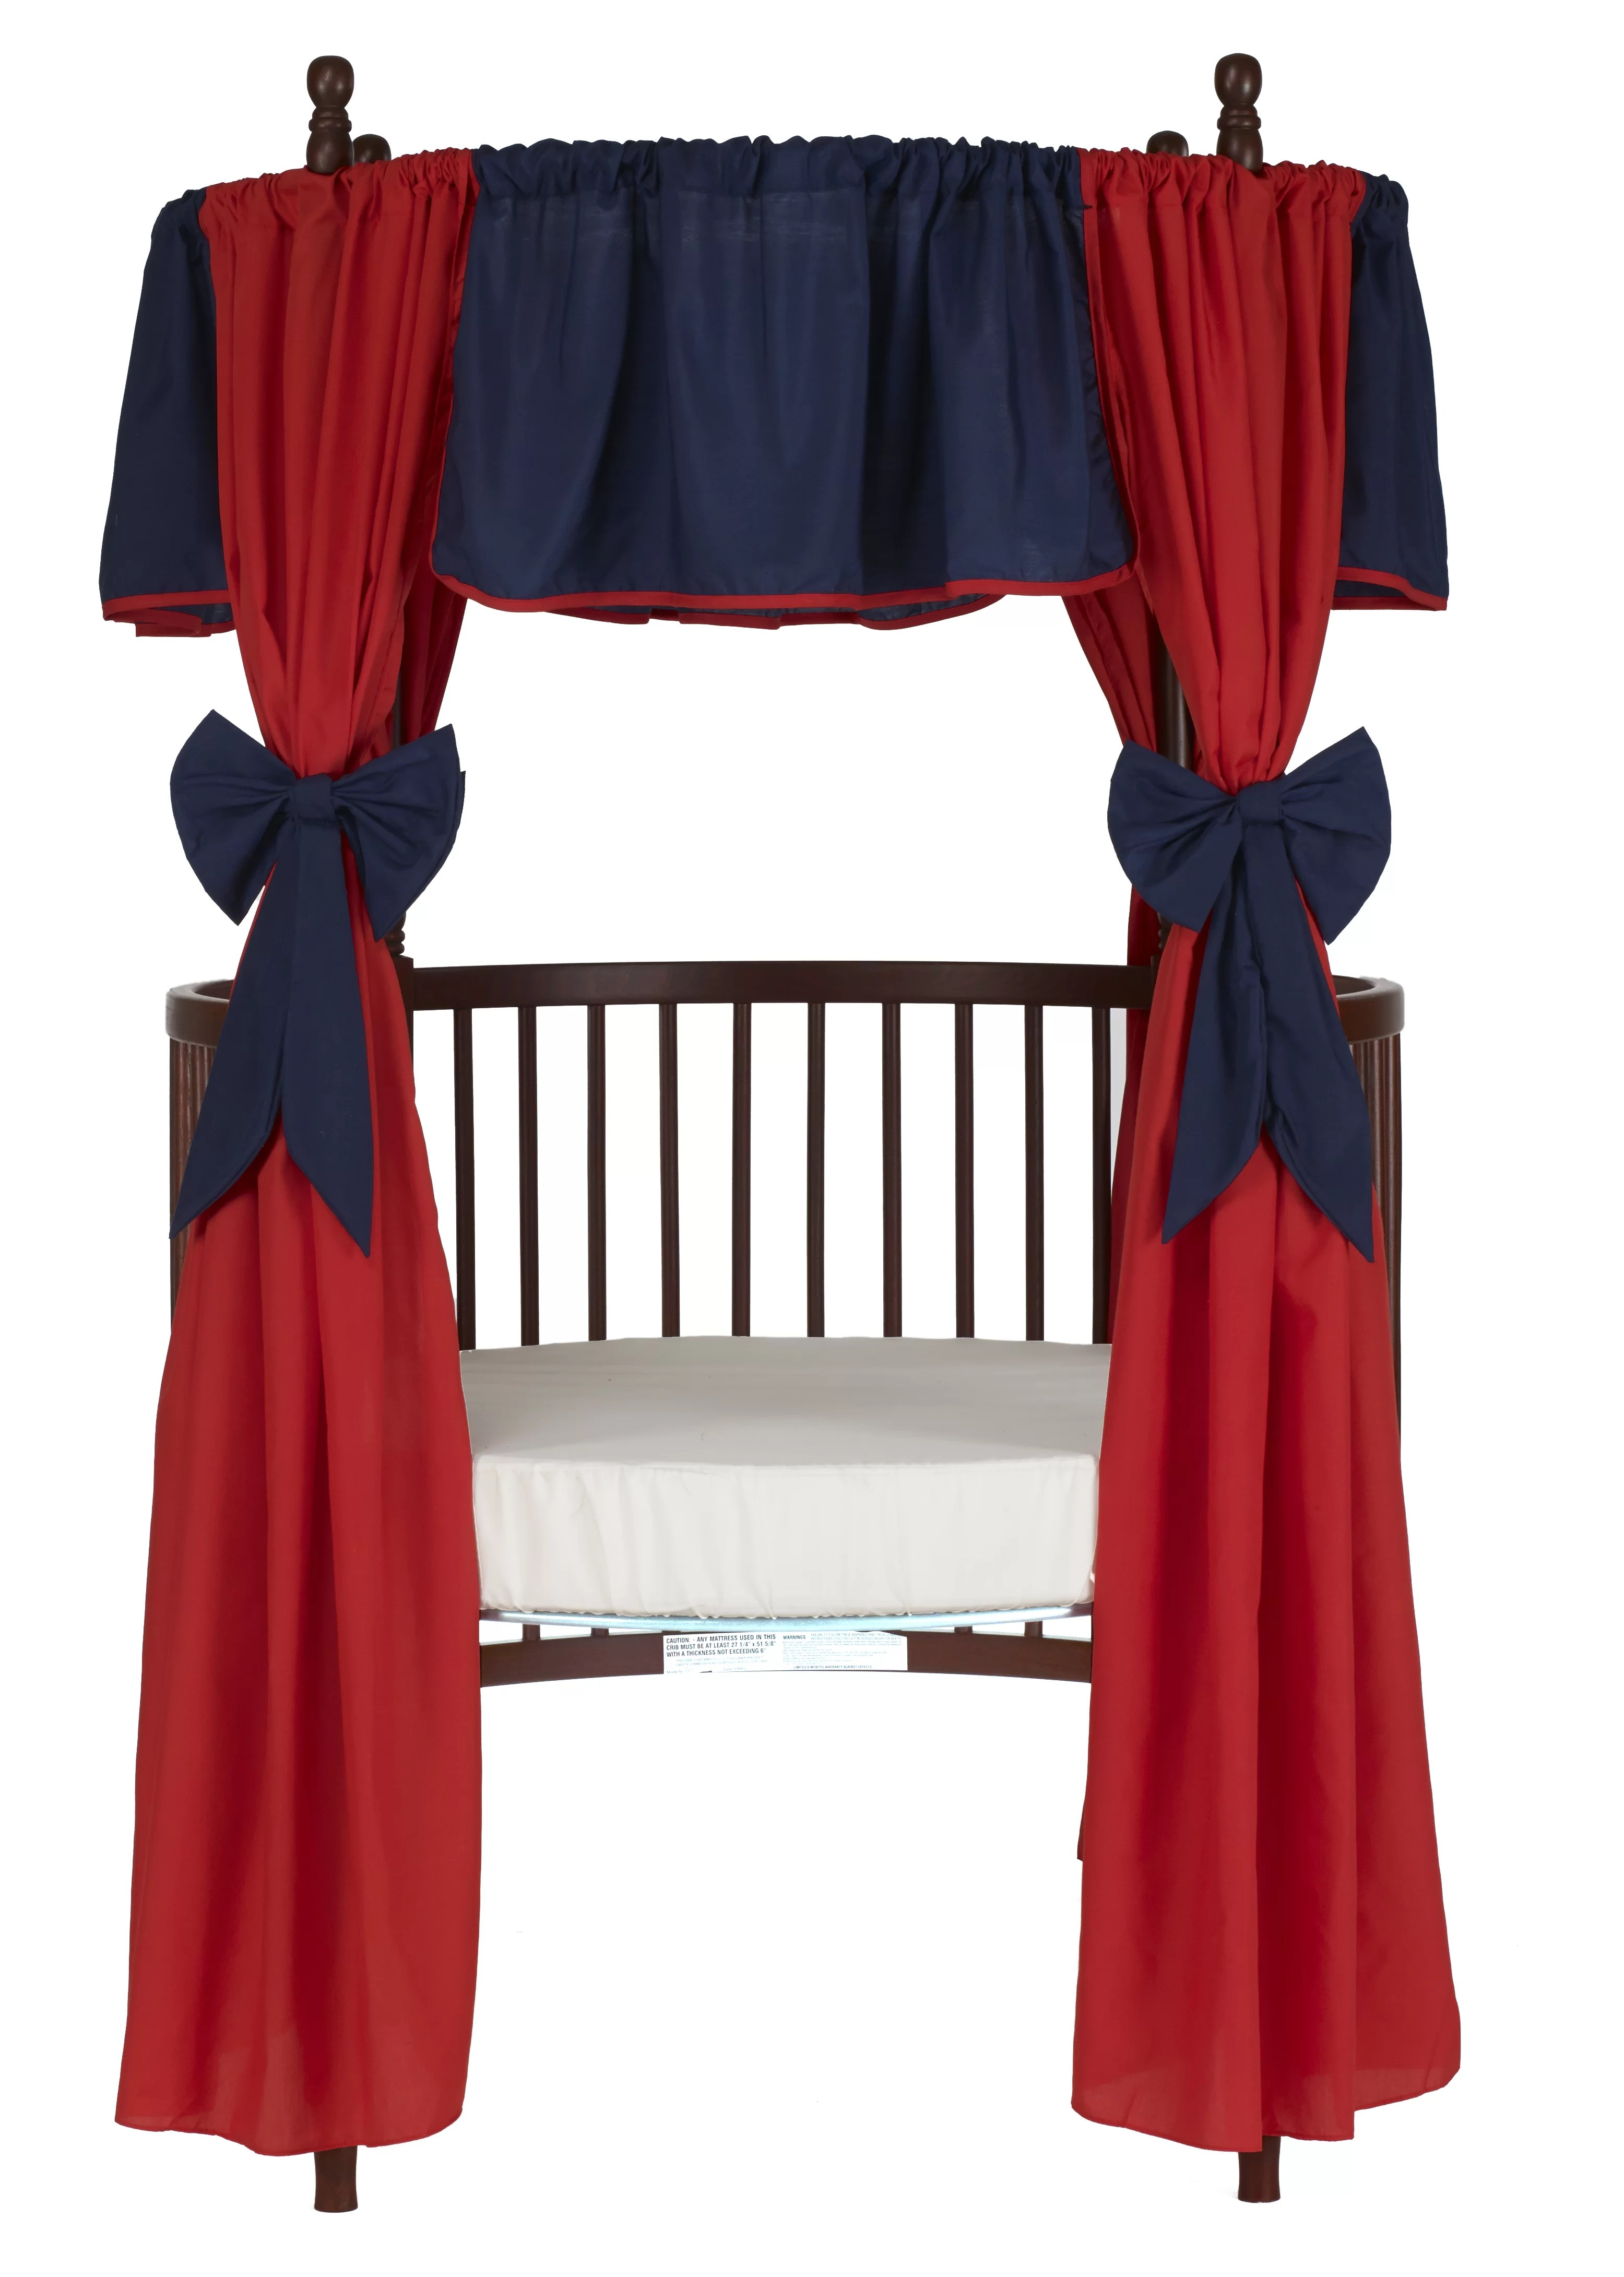 12 piece solid reversible round crib curtain and valance set